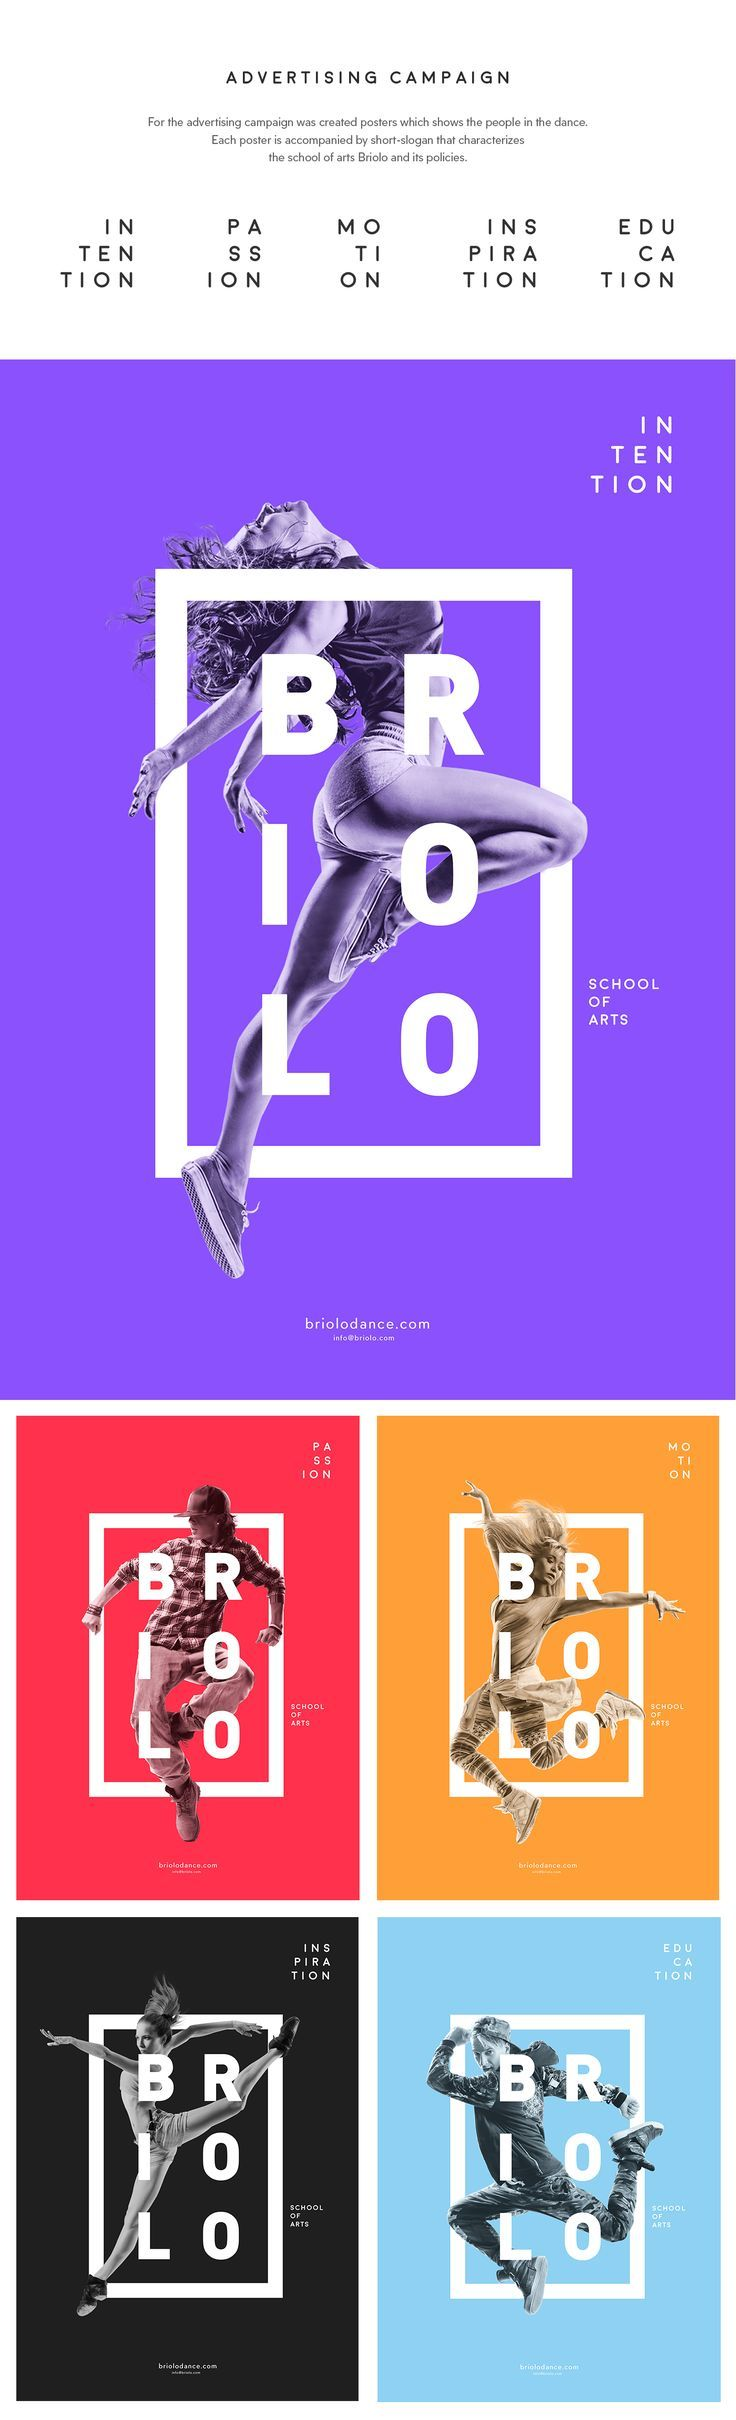 Poster design trends - Find This Pin And More On Poster Design By Newbiemediamd